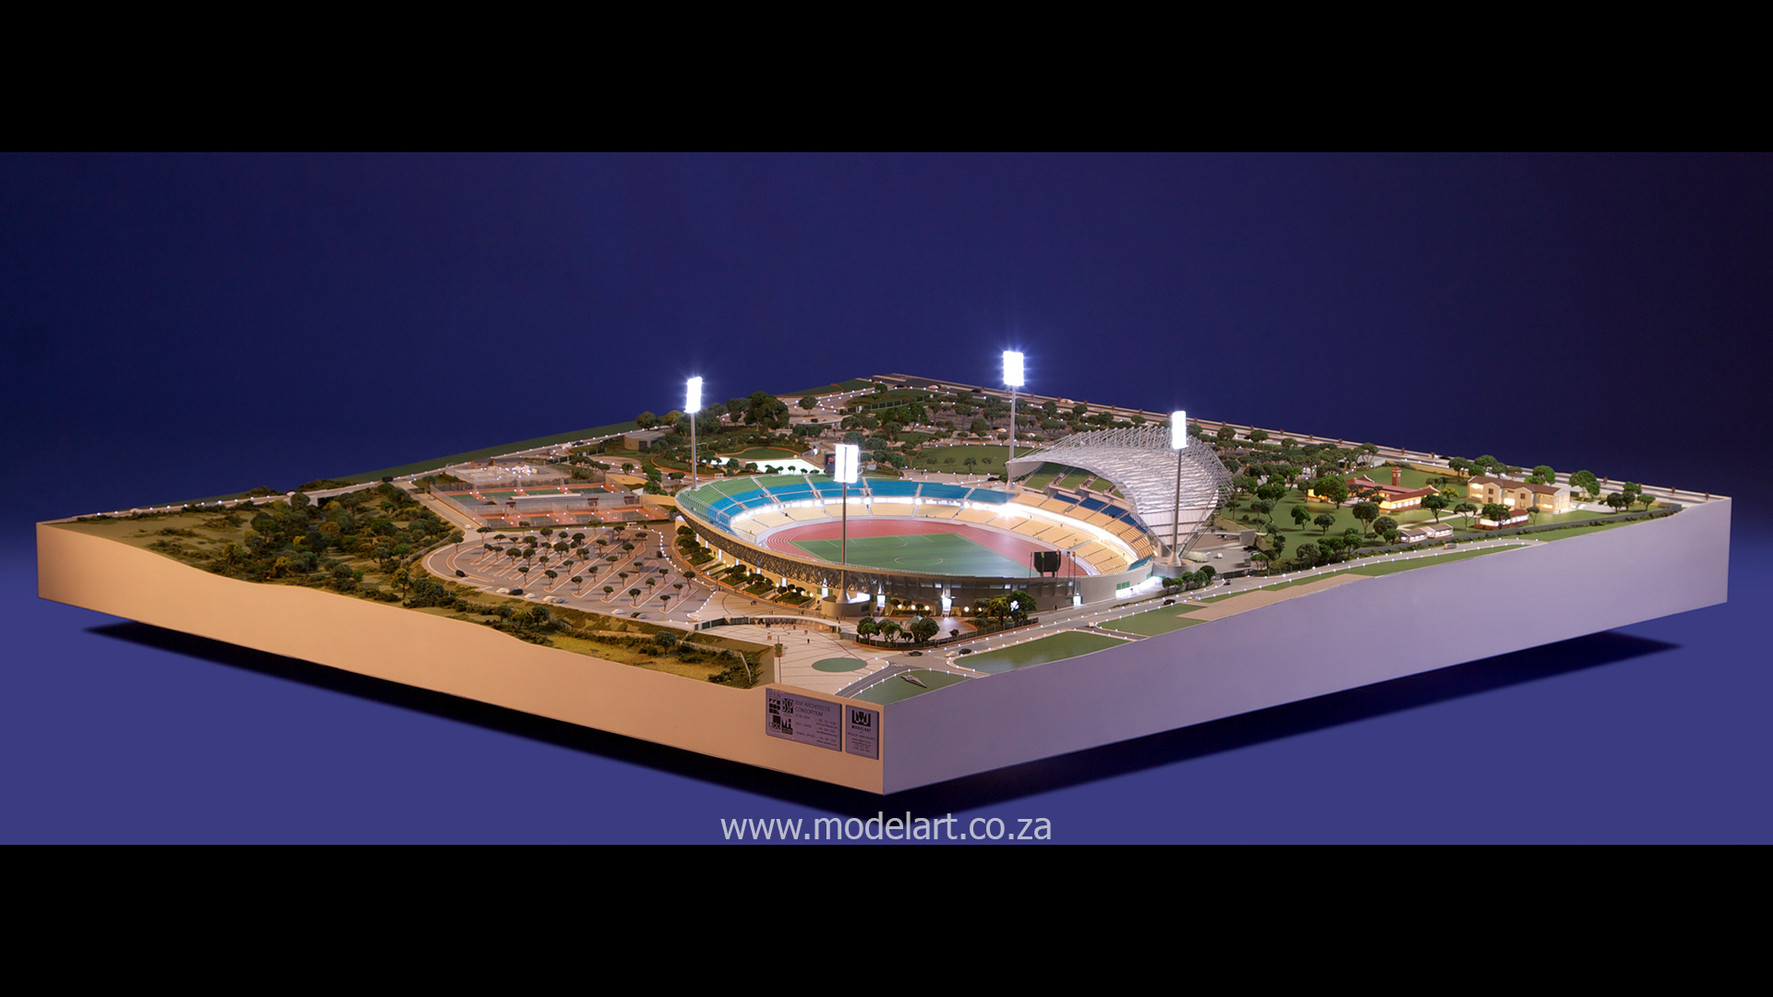 Architectural-Scale-Model-Sports Facilities-Royal Bafokeng Stadium-2